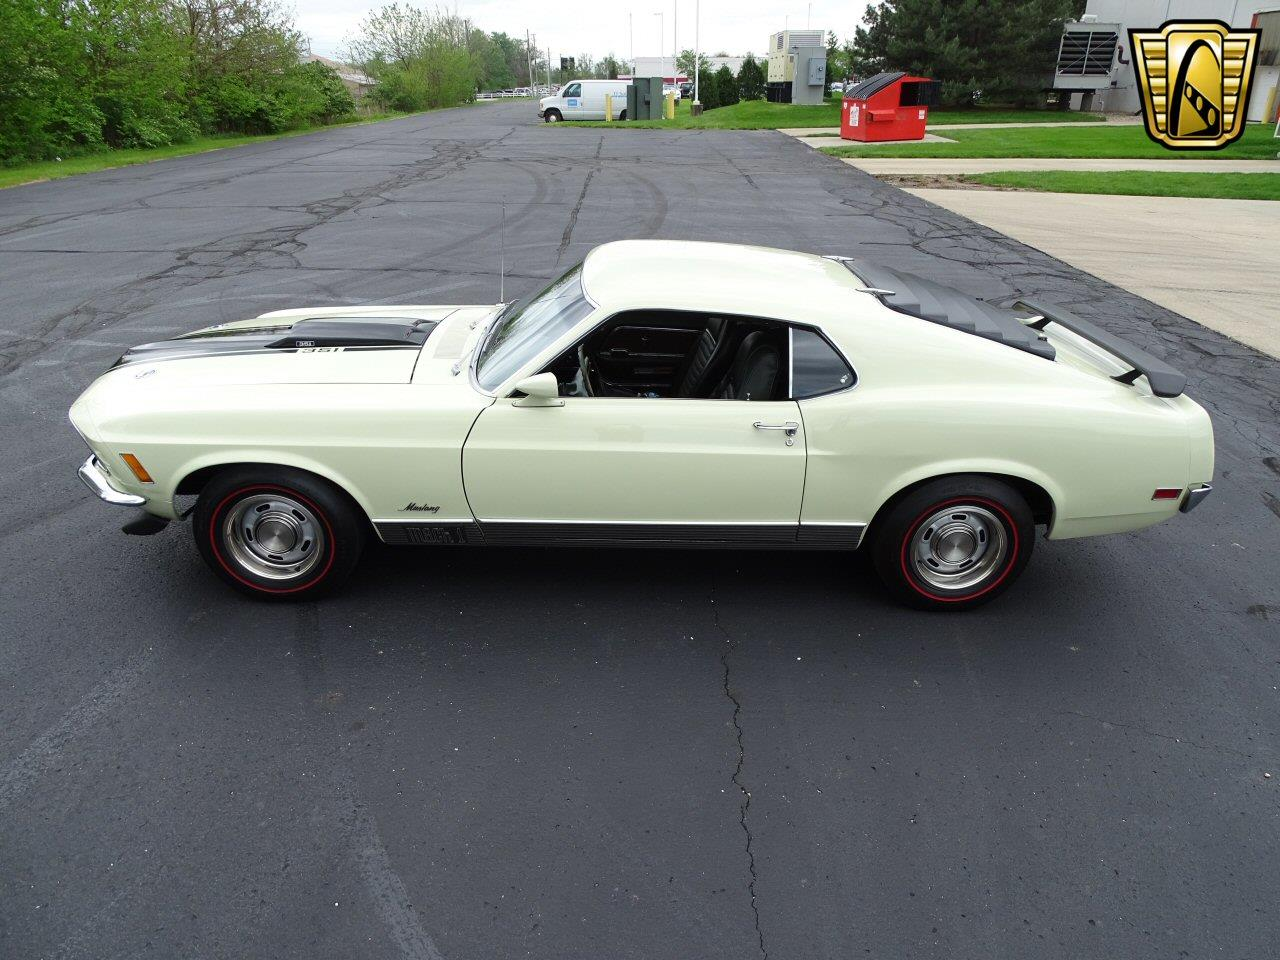 Large Picture of 1970 Mustang located in Indiana Offered by Gateway Classic Cars - Indianapolis - L70Y